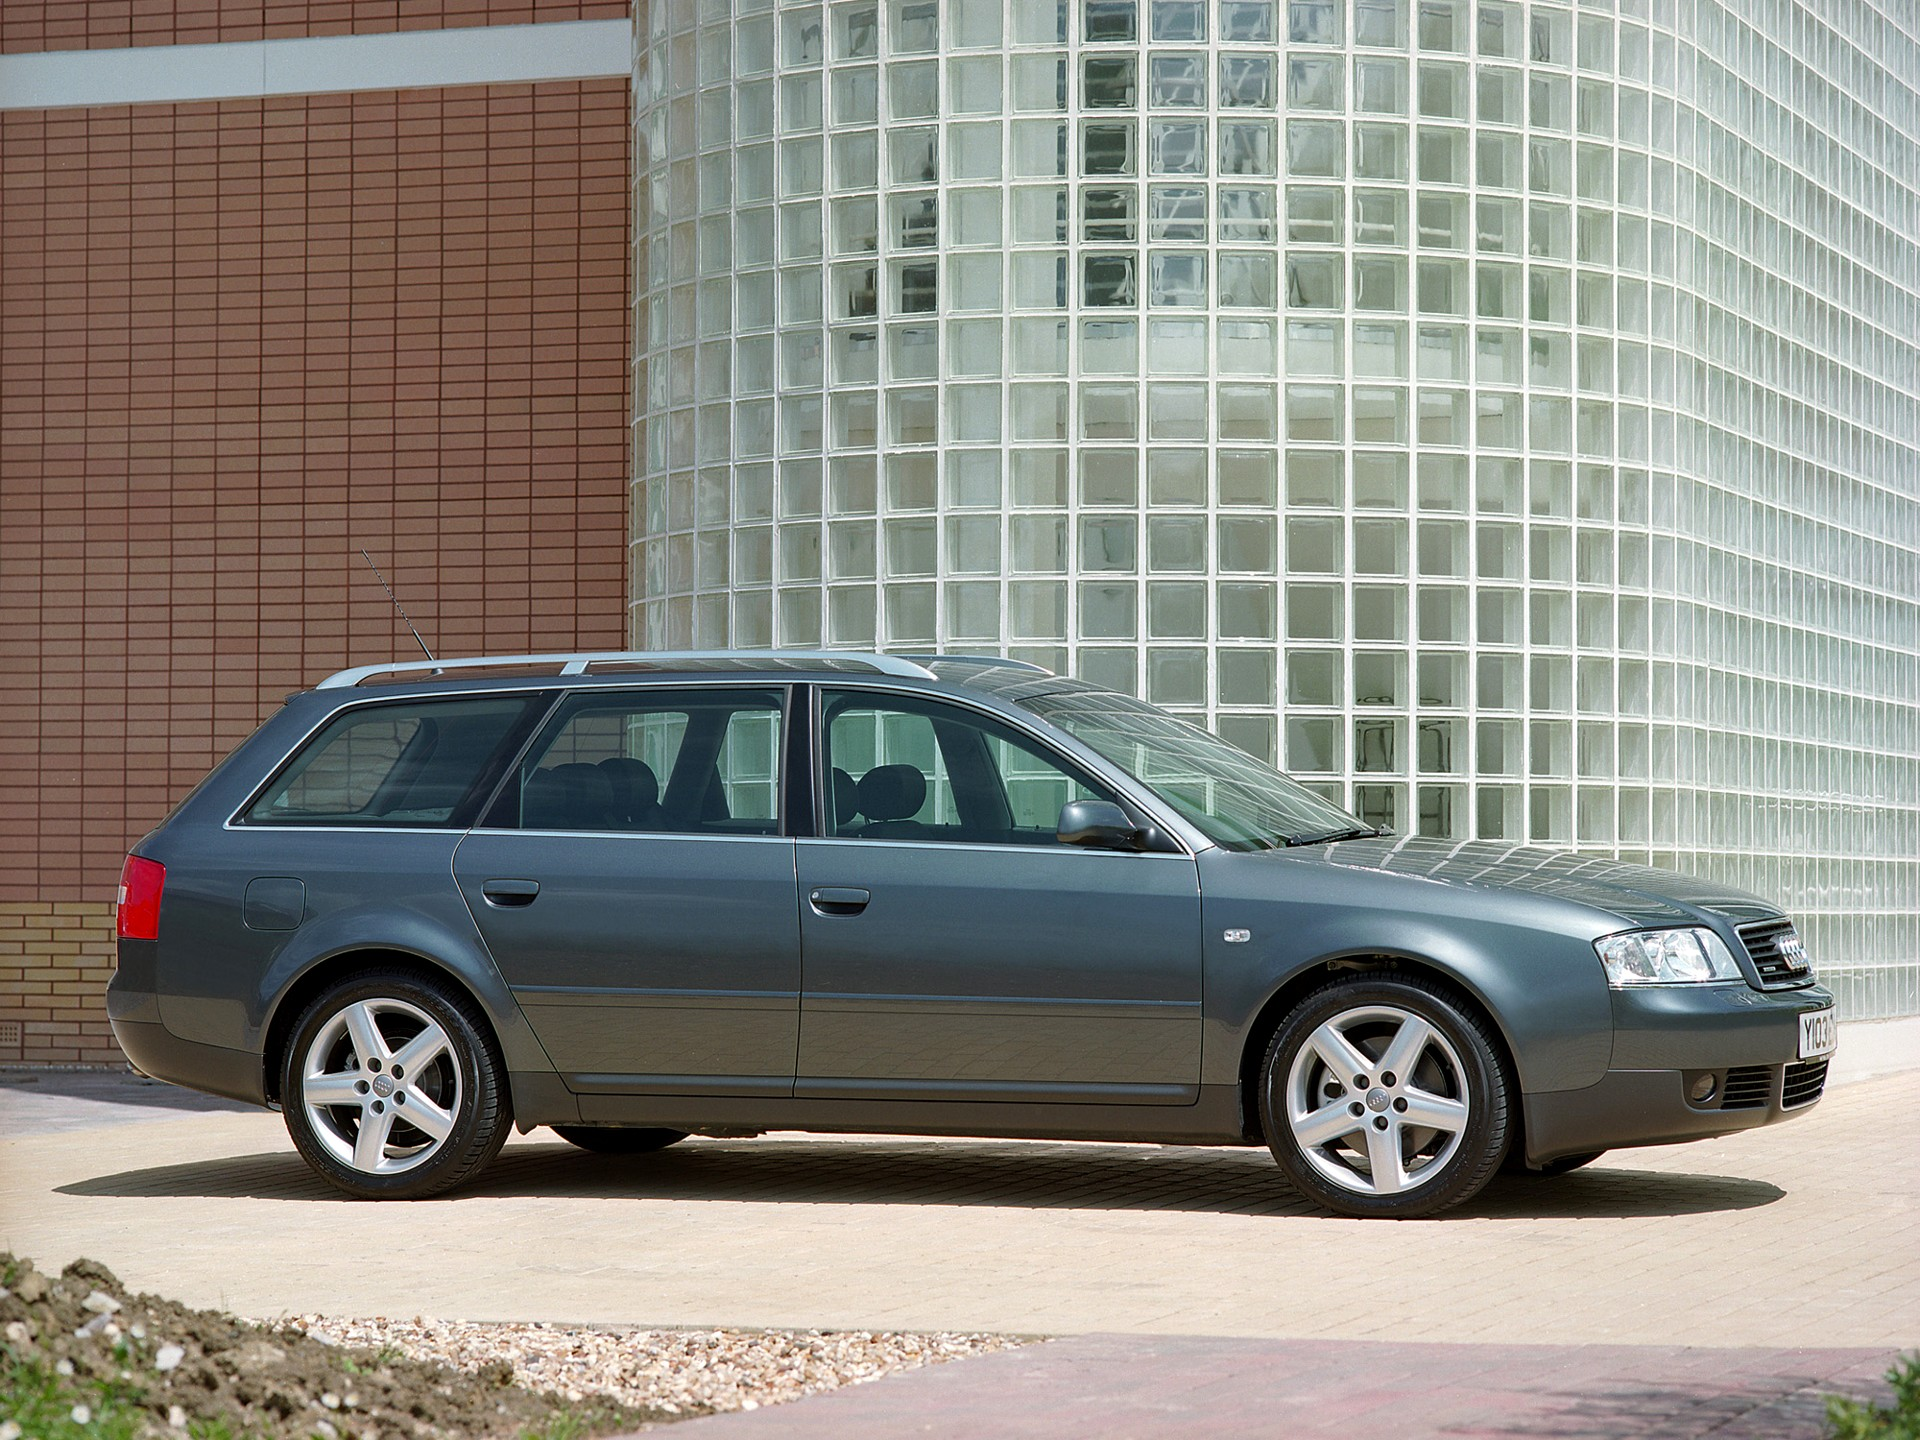 2001 audi a6 avant 7 audi 2001 2004 driven to write. Black Bedroom Furniture Sets. Home Design Ideas